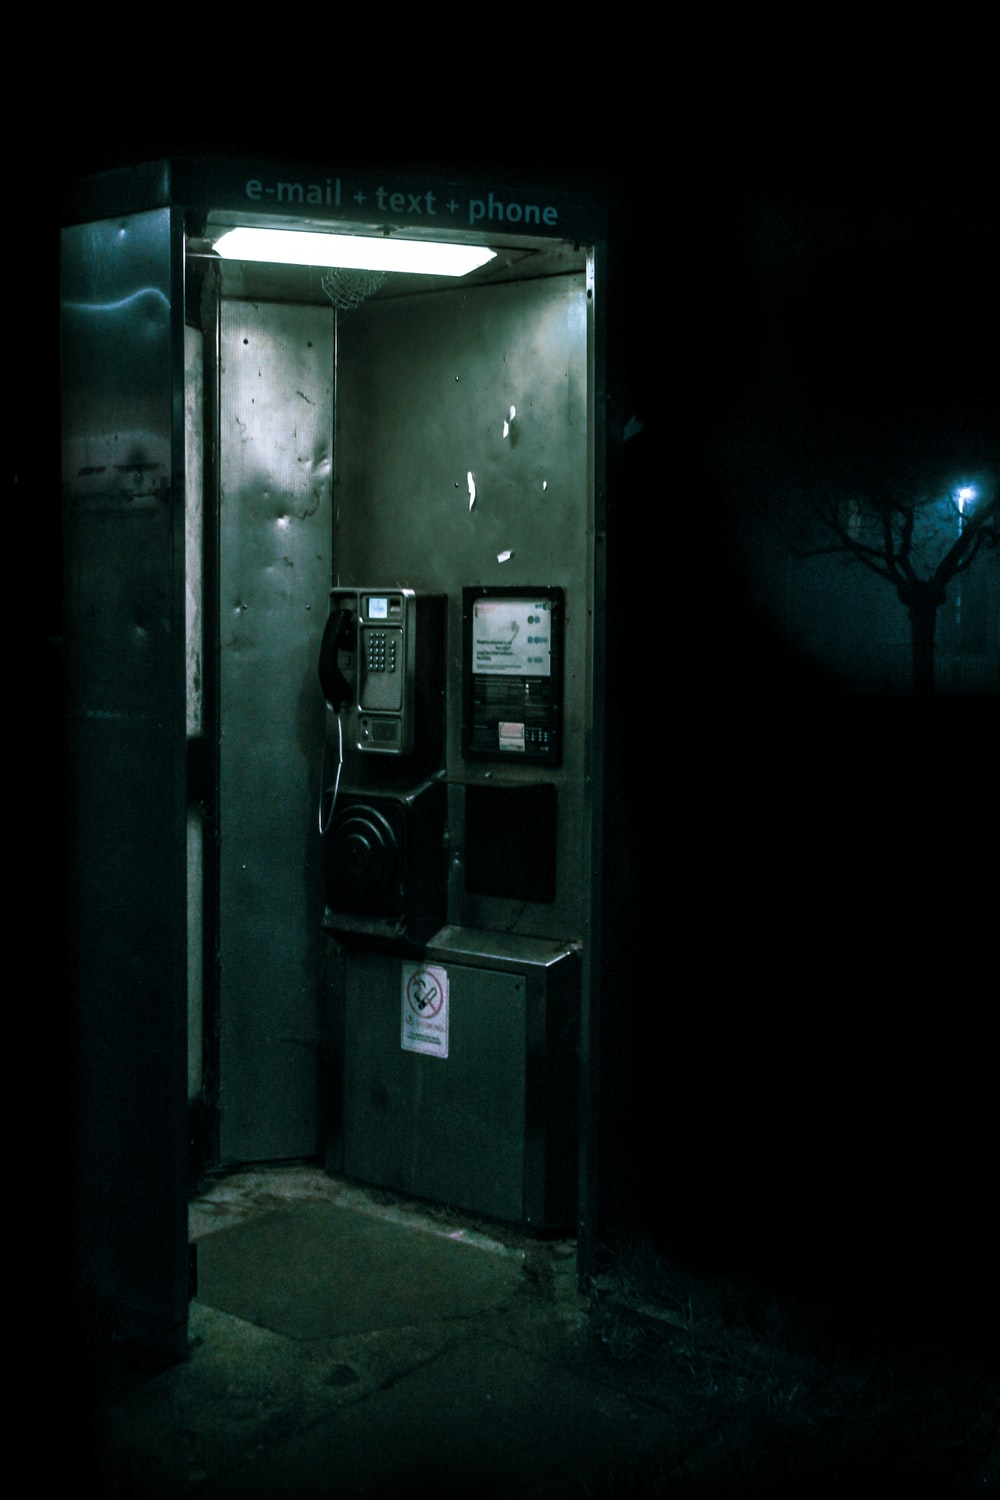 green and black telephone booth